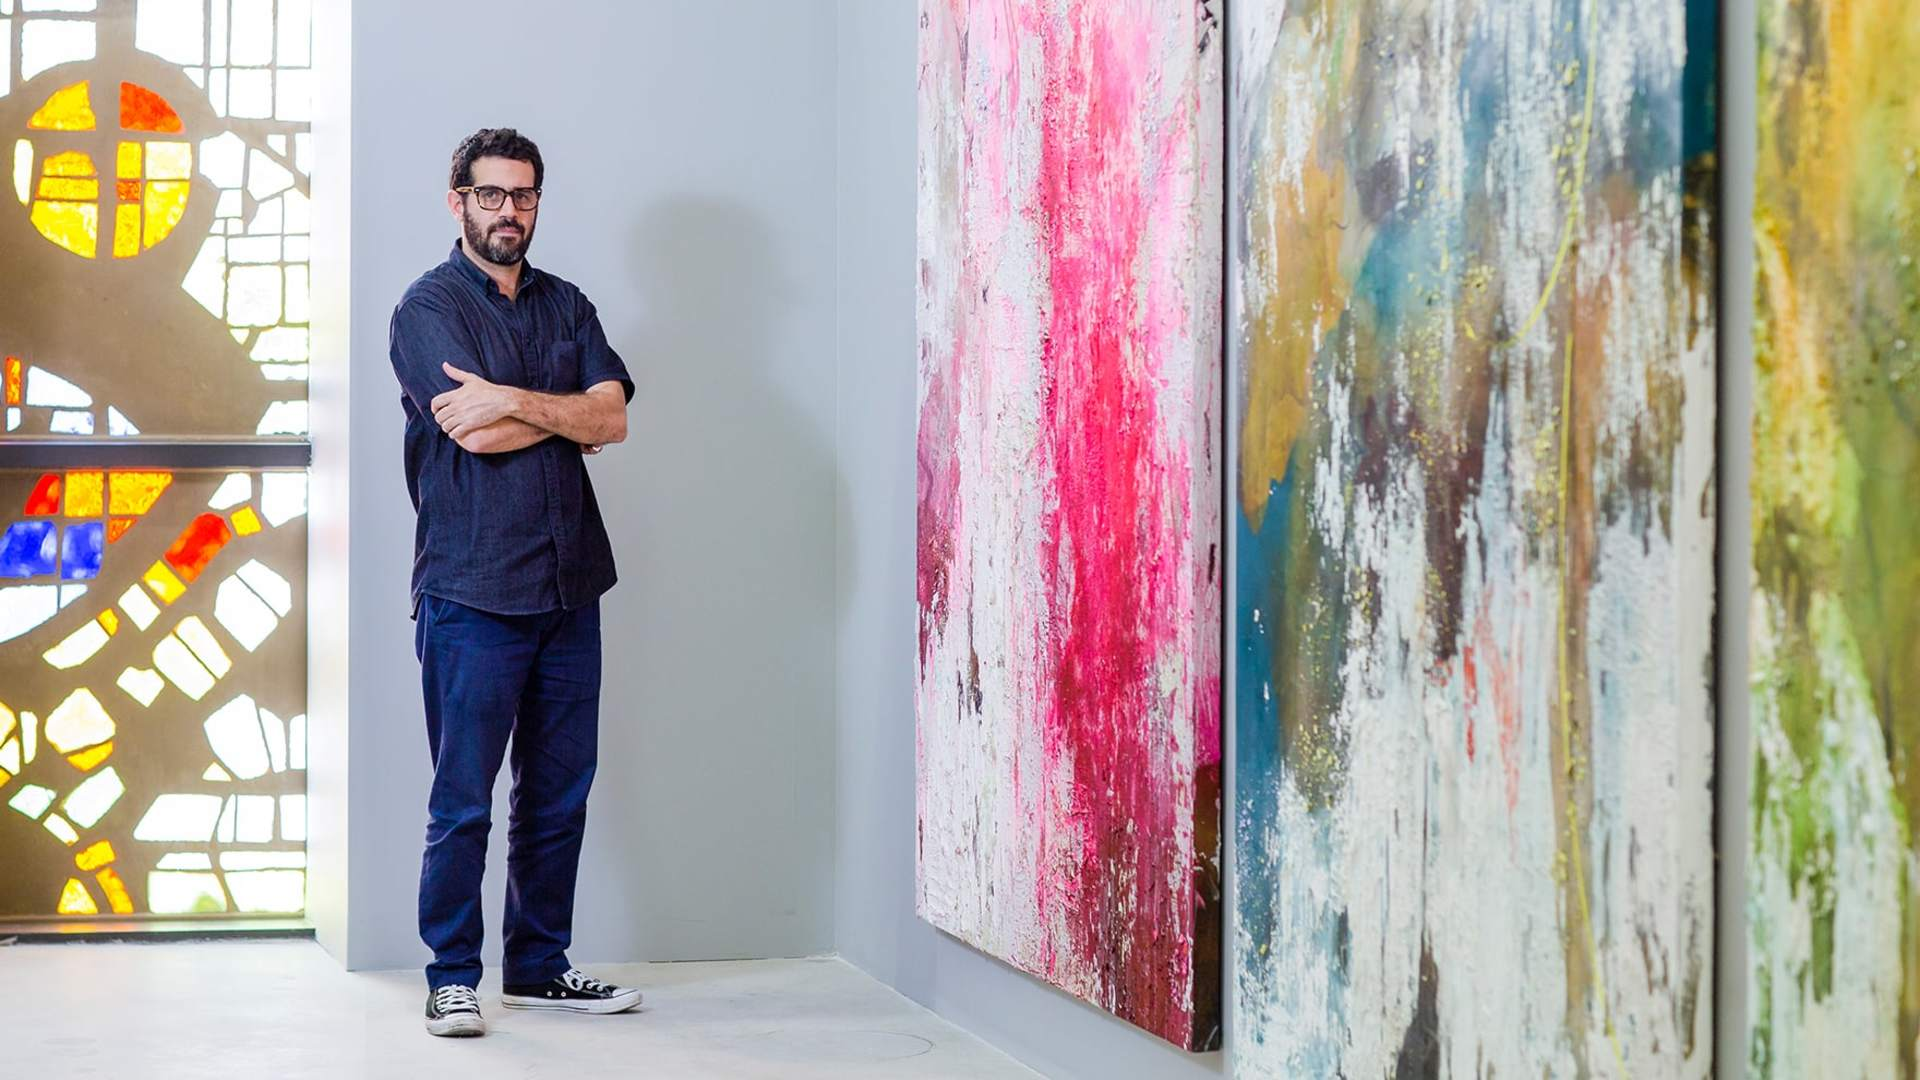 José Parlá standing in front of some of his art pieces. His work explores the connections between past and present by using colour and abstract calligraphy